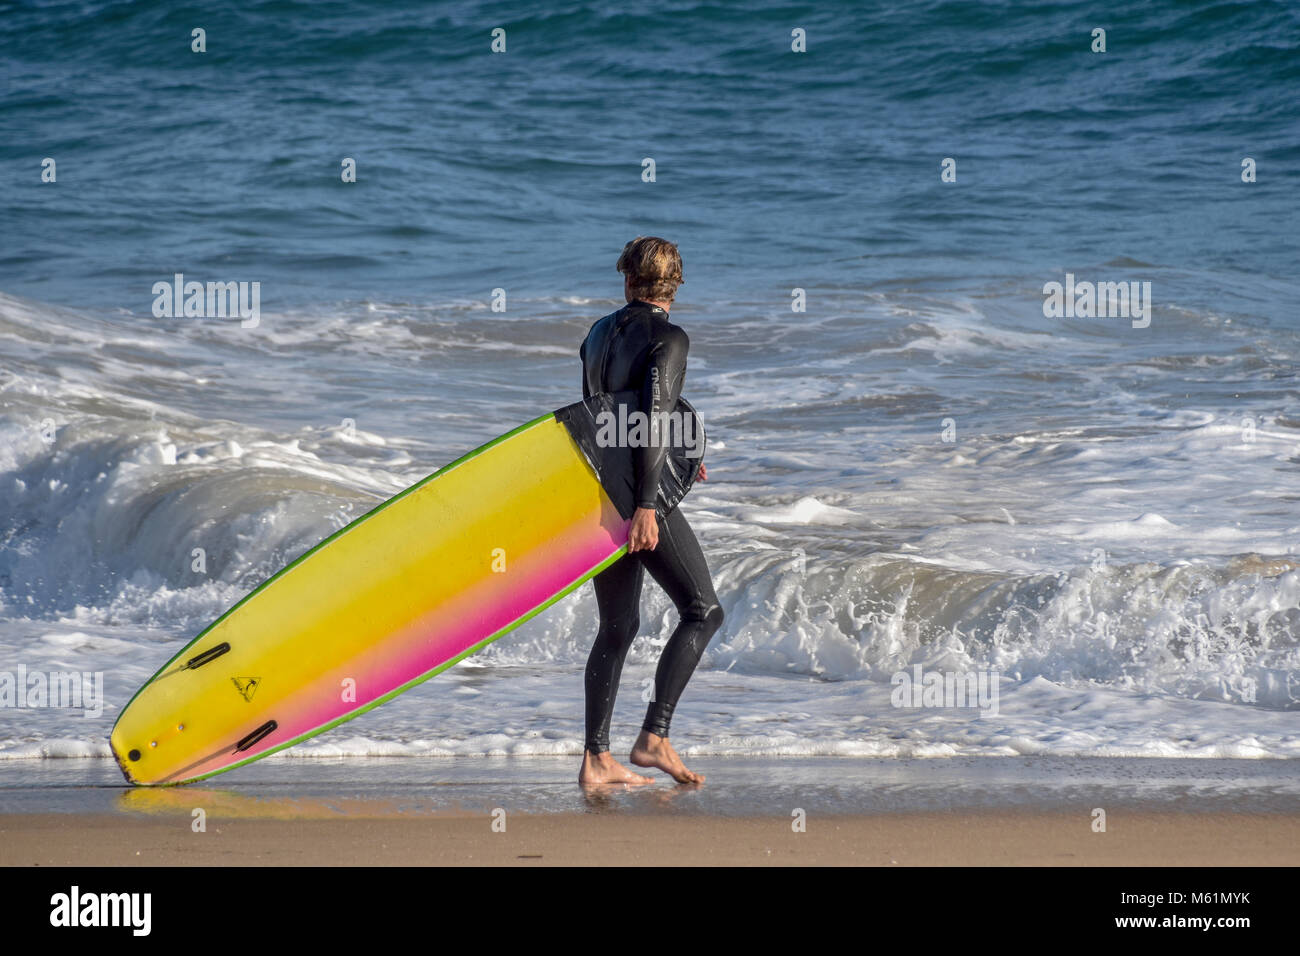 A surfer walks along Huntington City Beach checking out the waves. Huntington Beach is known for it's surfing - Stock Image